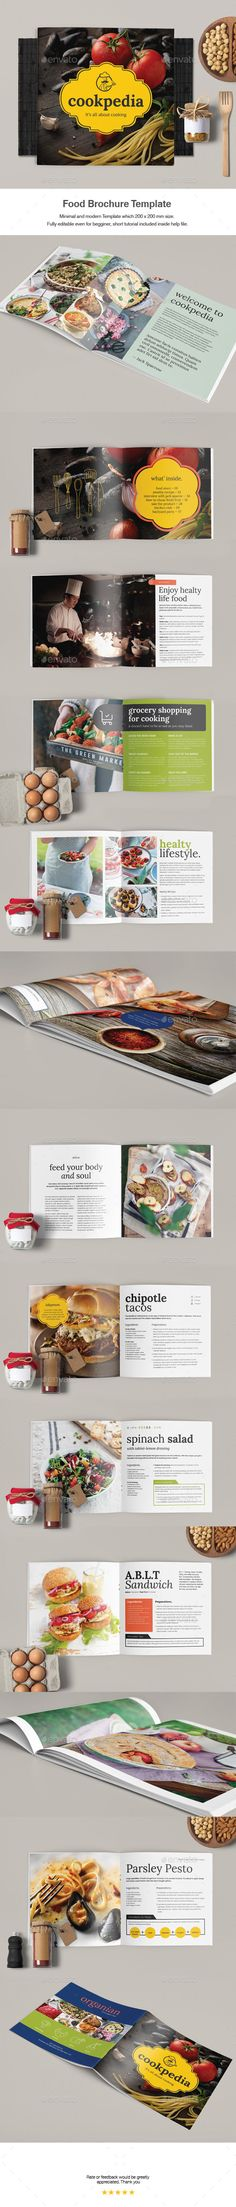 Food Brochure Template  — InDesign Template #fabric texture #templates • Download ➝ https://graphicriver.net/item/food-brochure-template/18597072?ref=pxcr